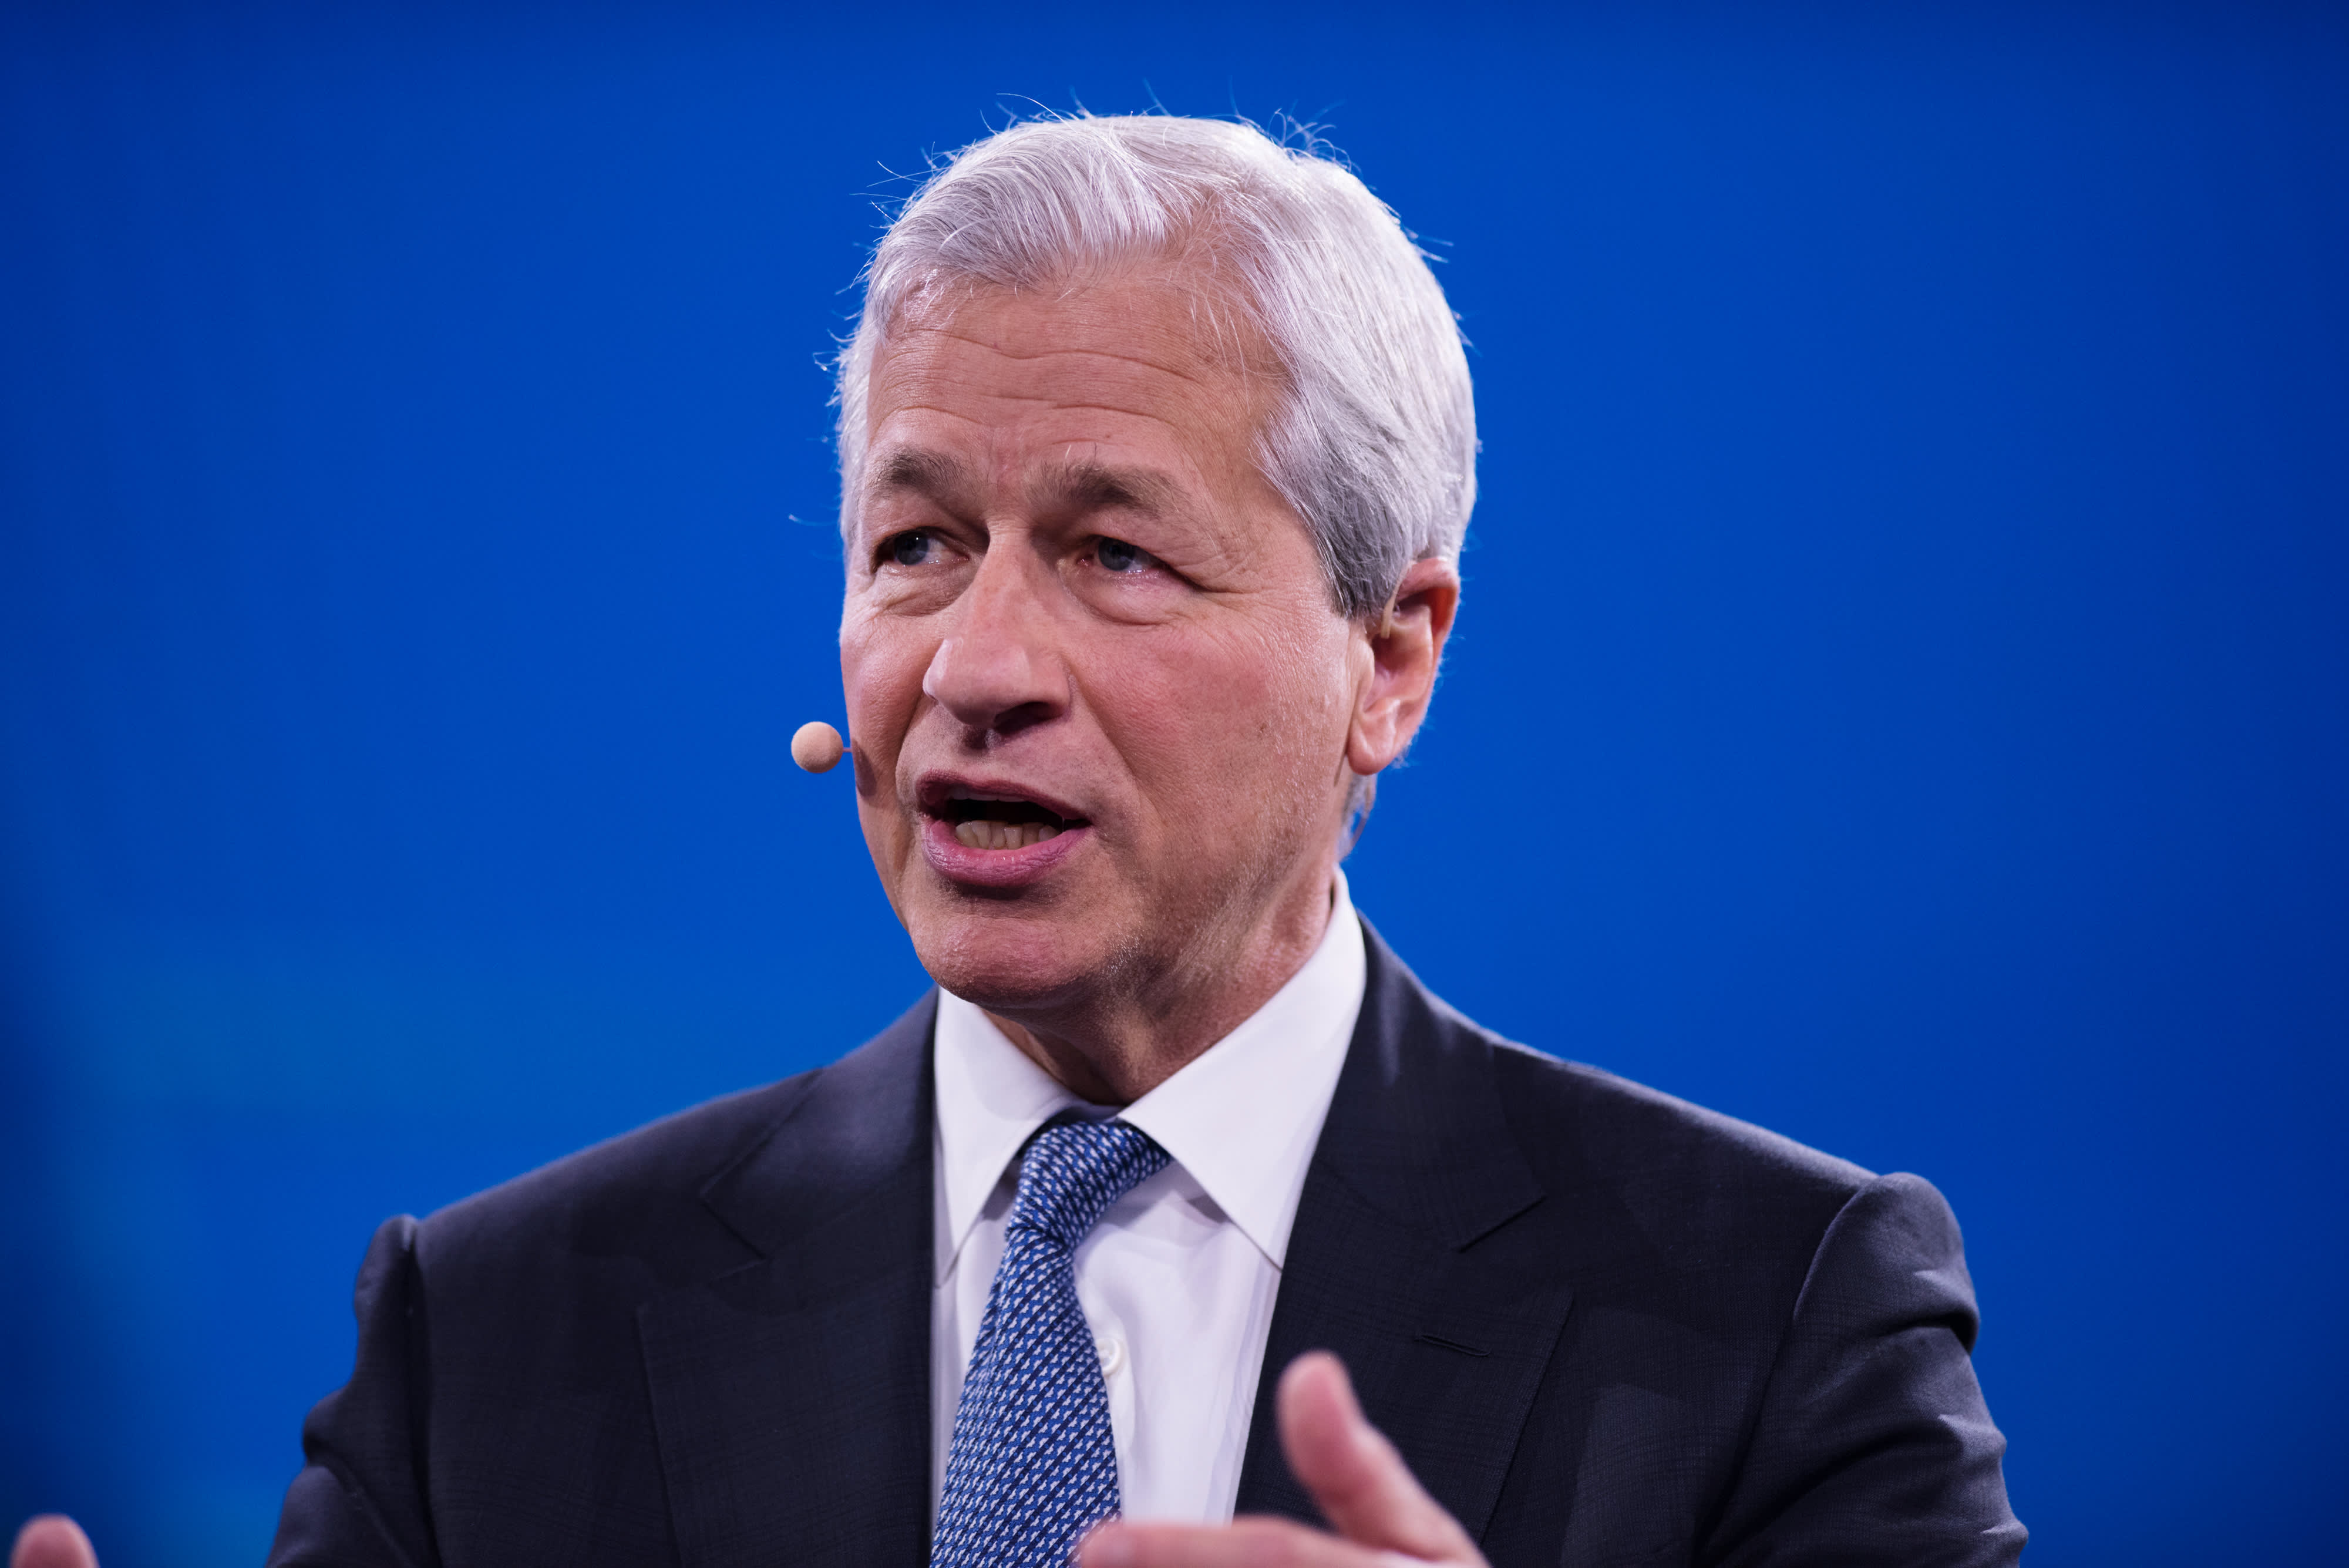 JPMorgan exceeds profit expectations on $1.5 billion boost from better-than-expected loan losses